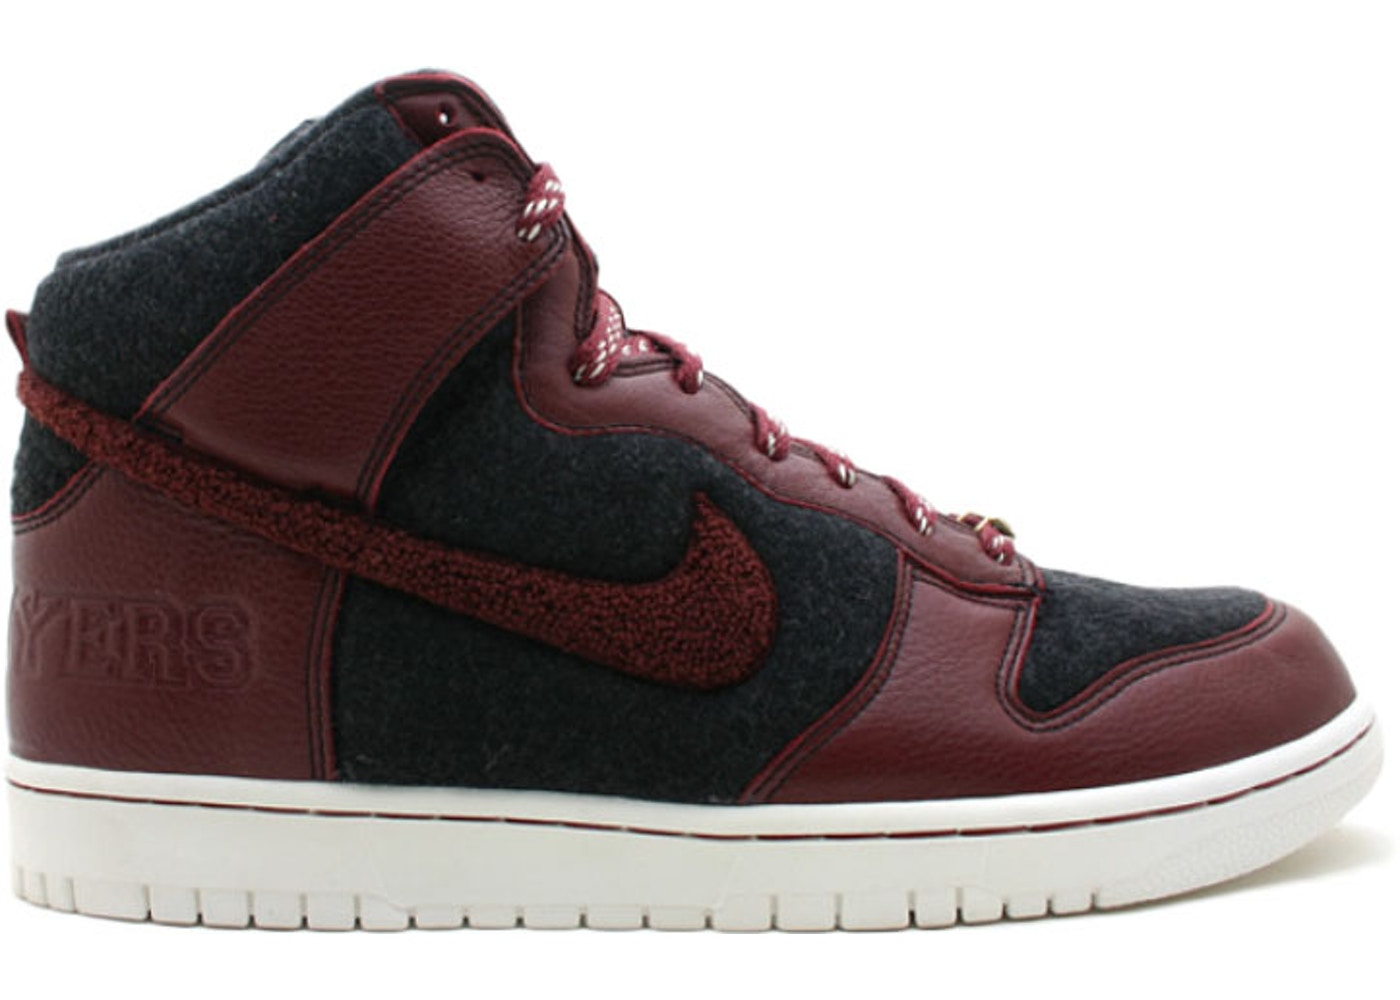 new arrivals aaa42 54109 Nike Dunk SB High Destroyer